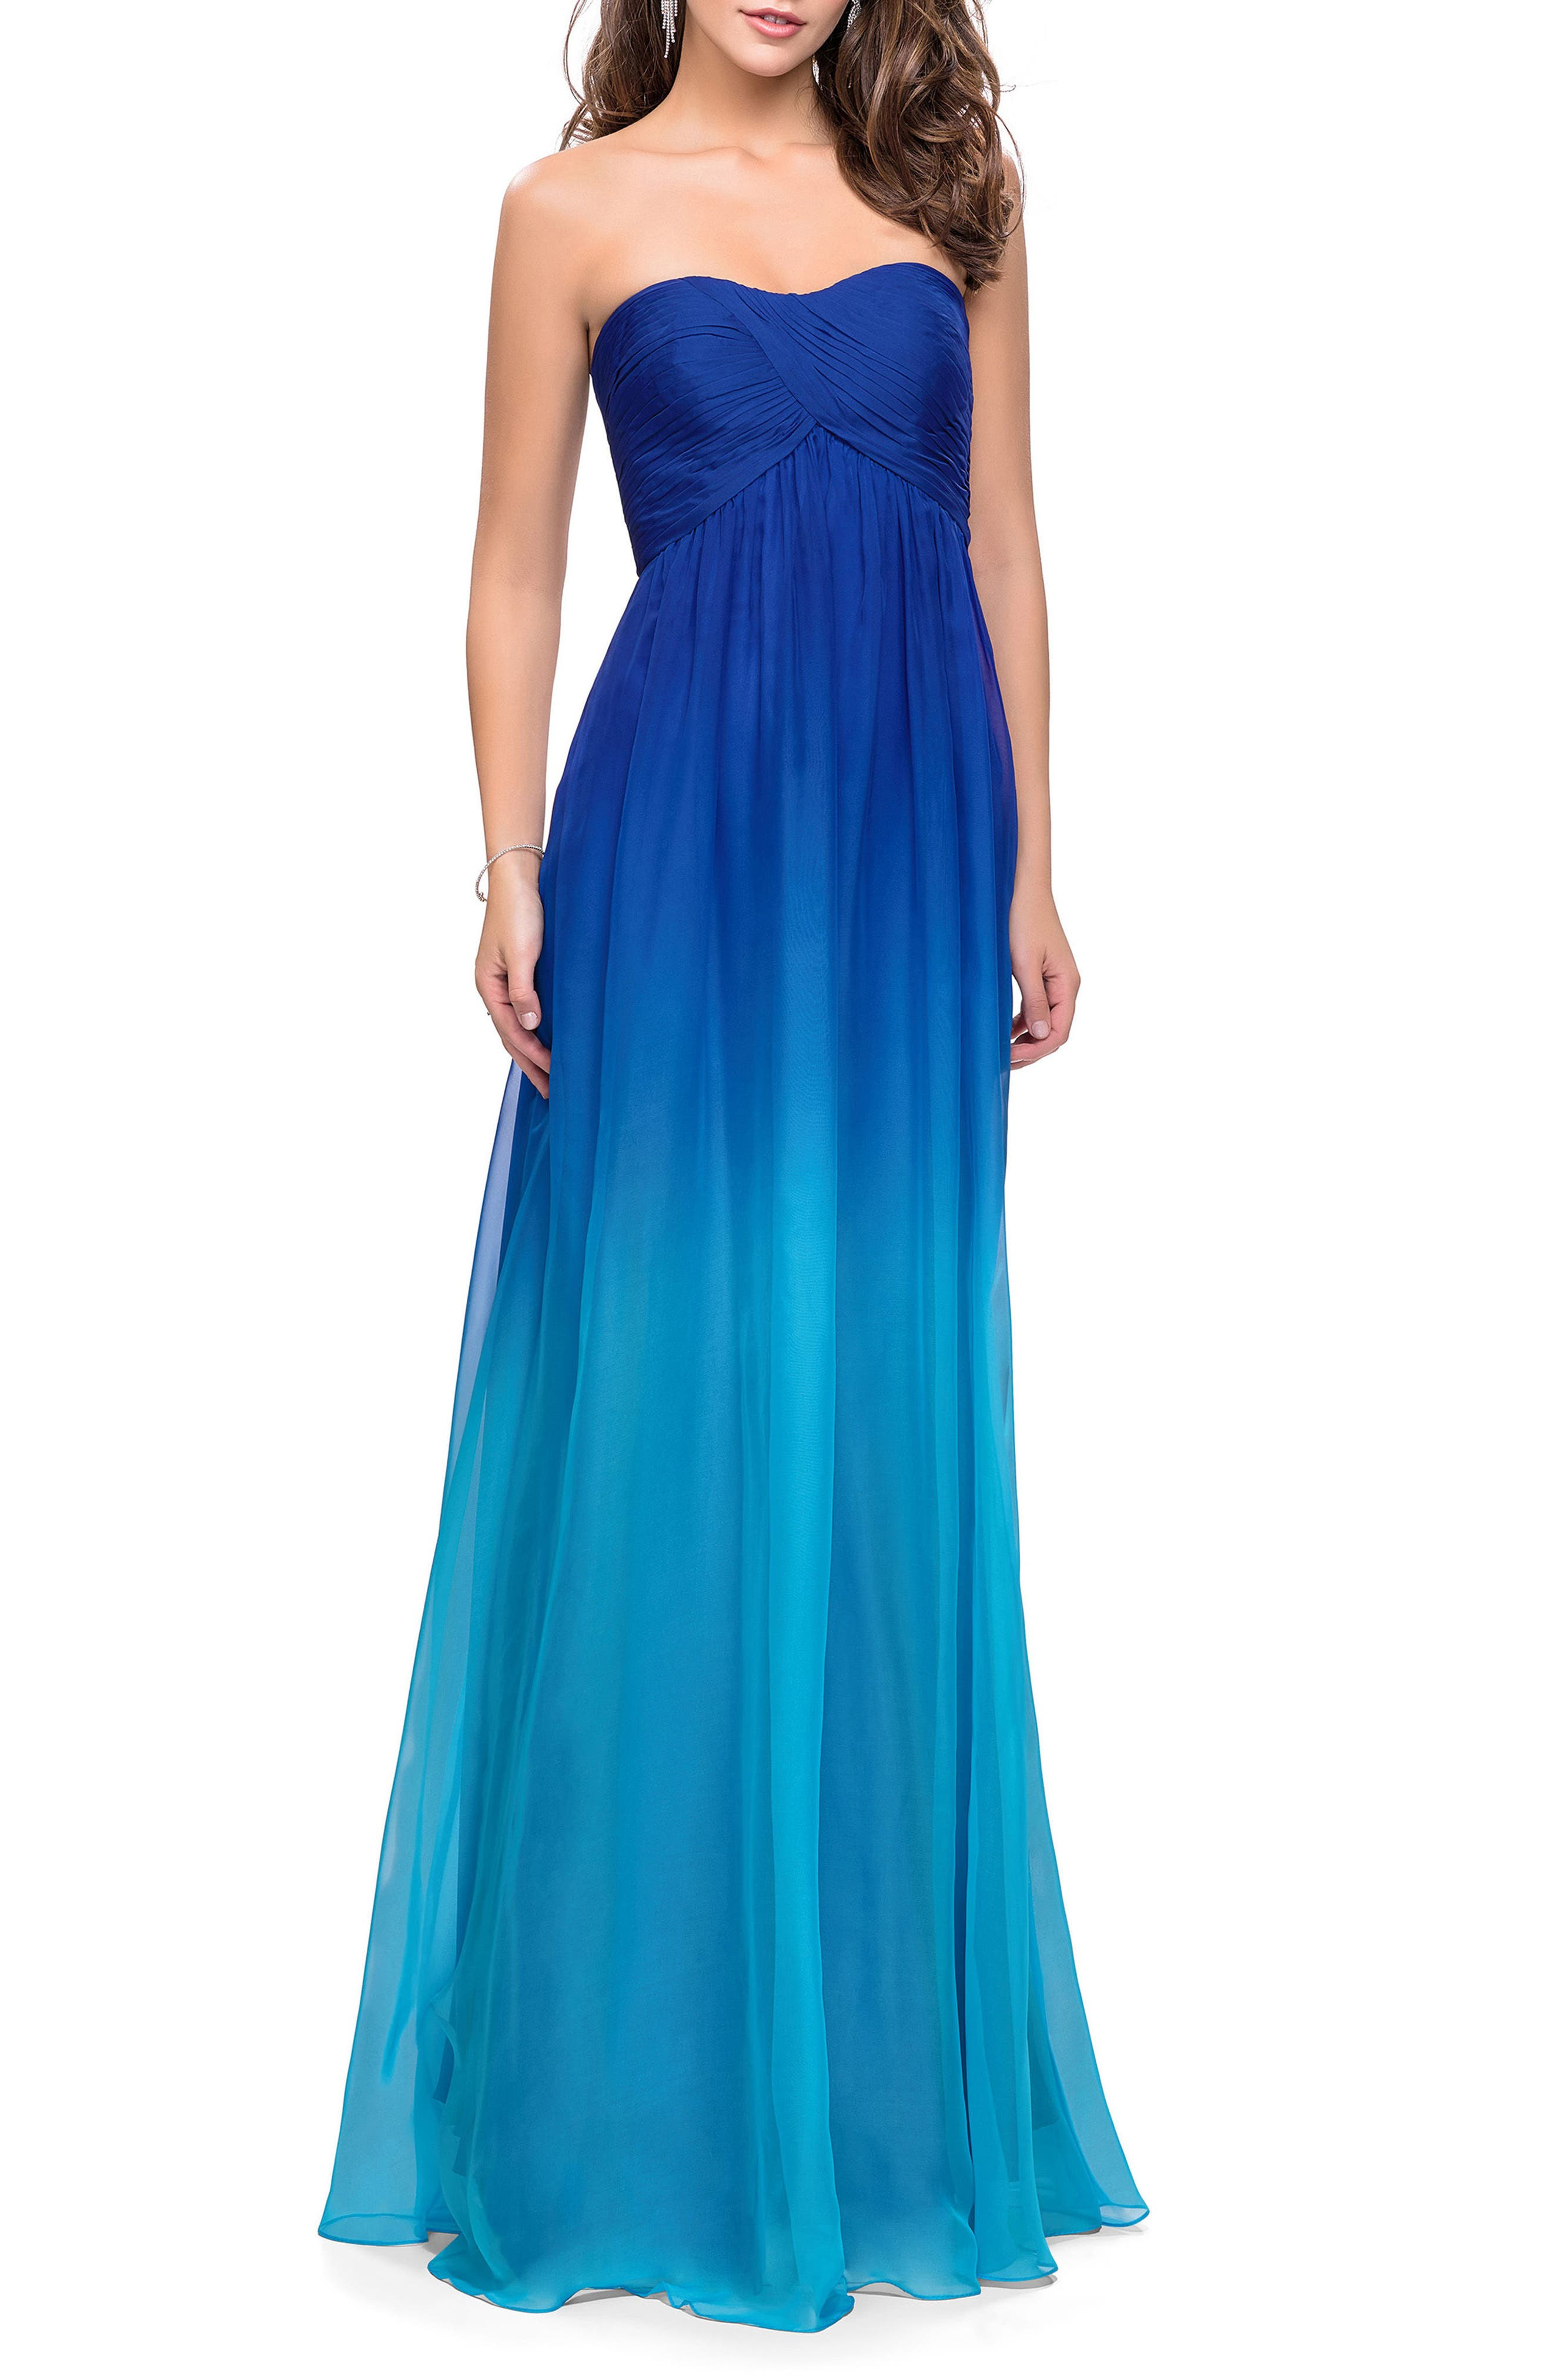 Ruched Ombré Chiffon Strapless Gown,                             Alternate thumbnail 2, color,                             440